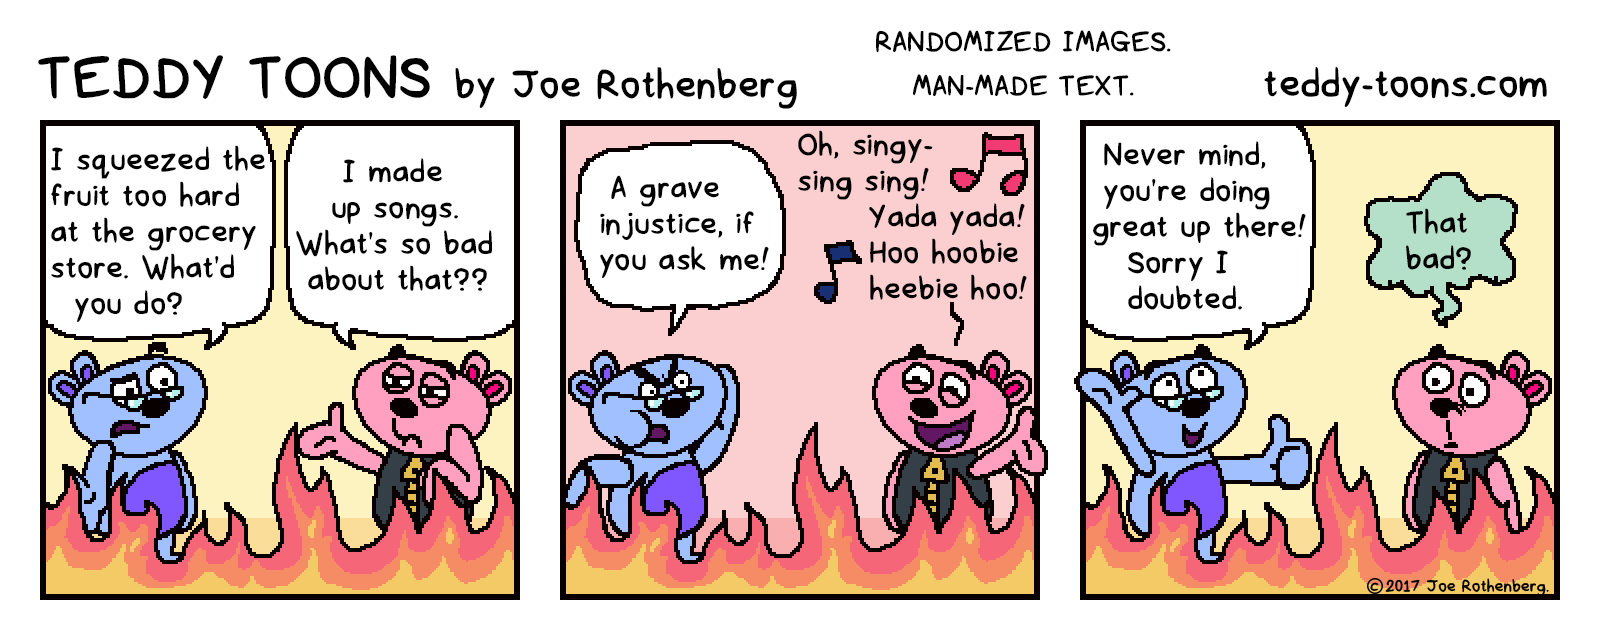 03-09-17.png